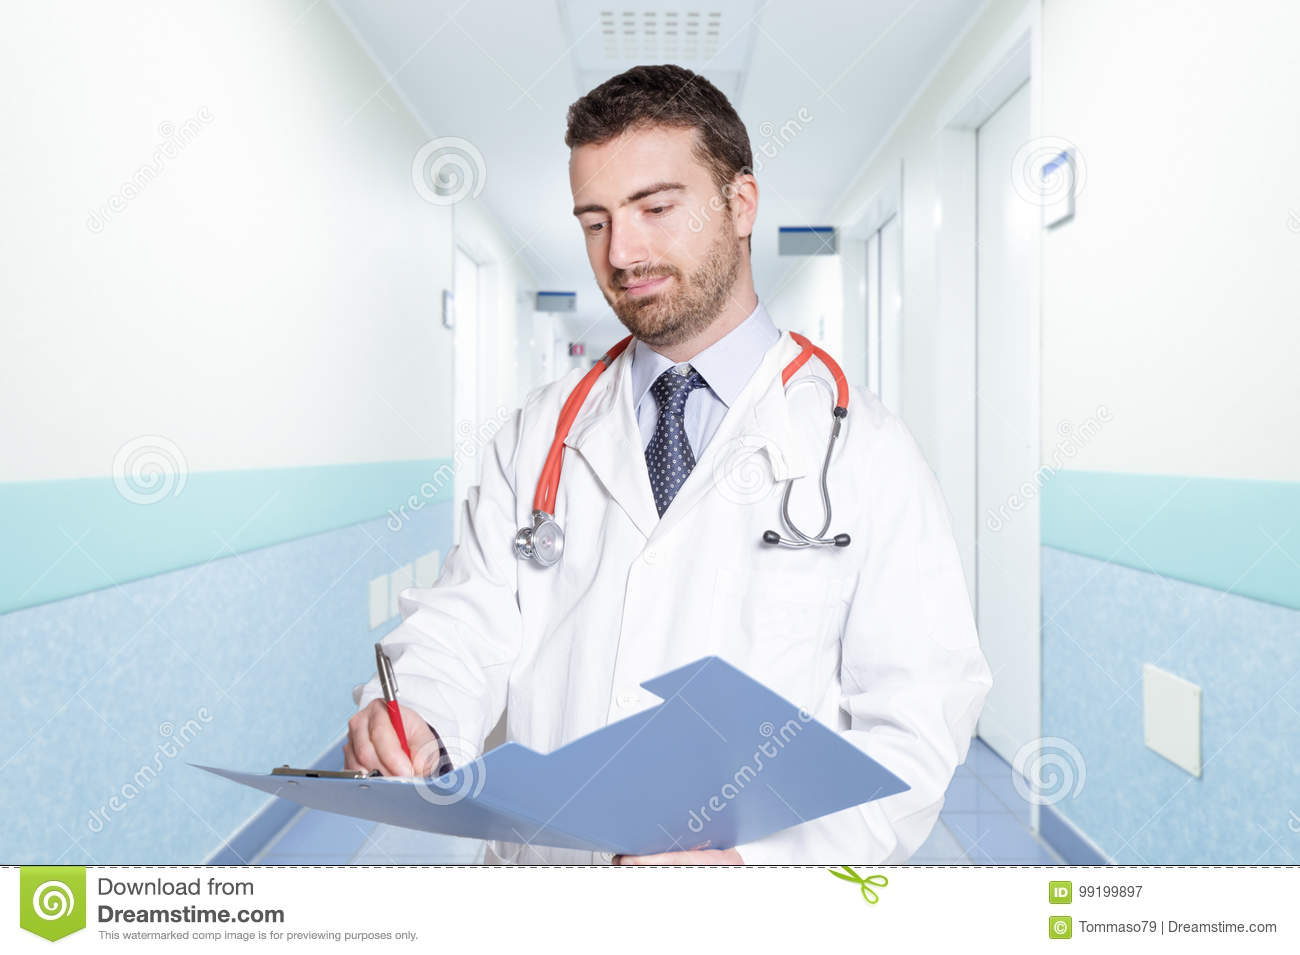 Young doctor portrait on hospital corridor background